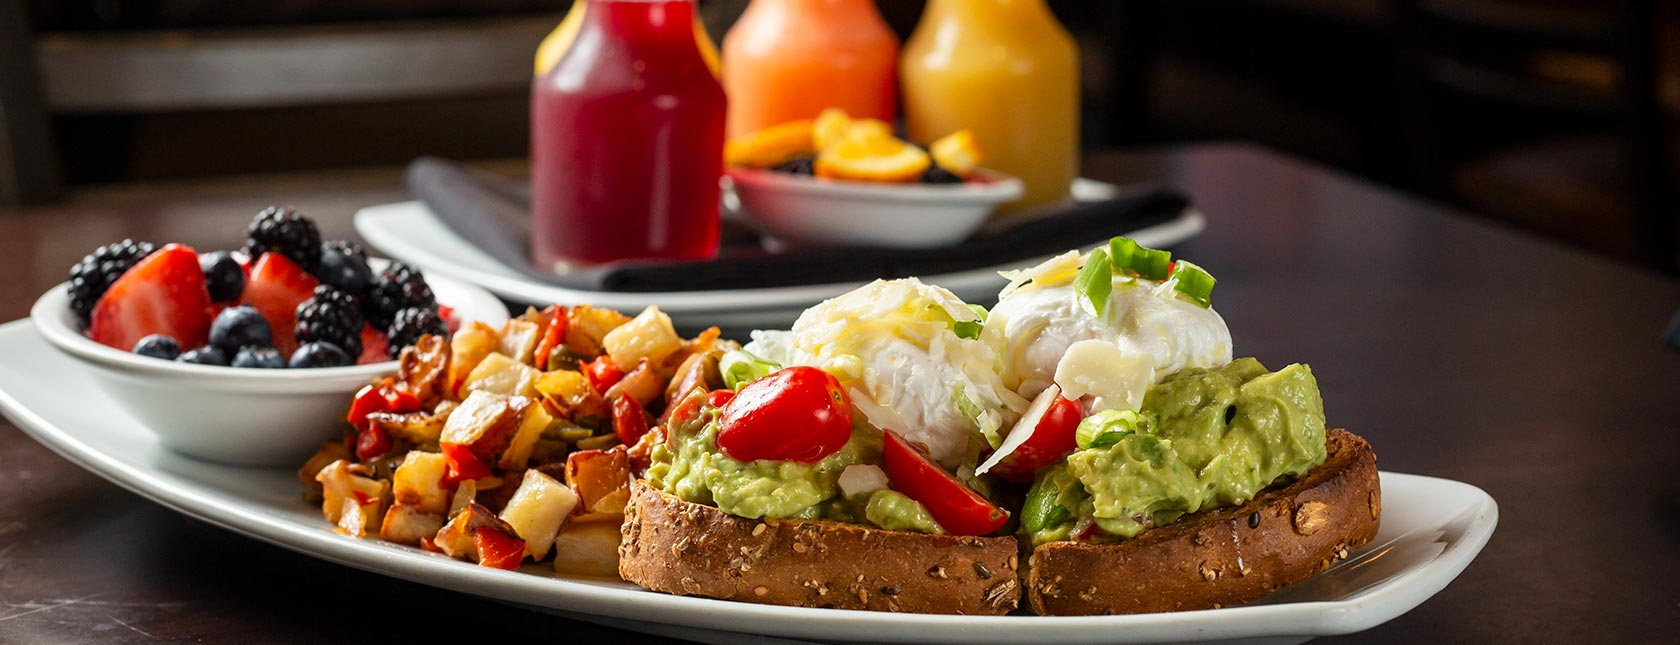 Avocado toast with potatoes and multiple juices in background